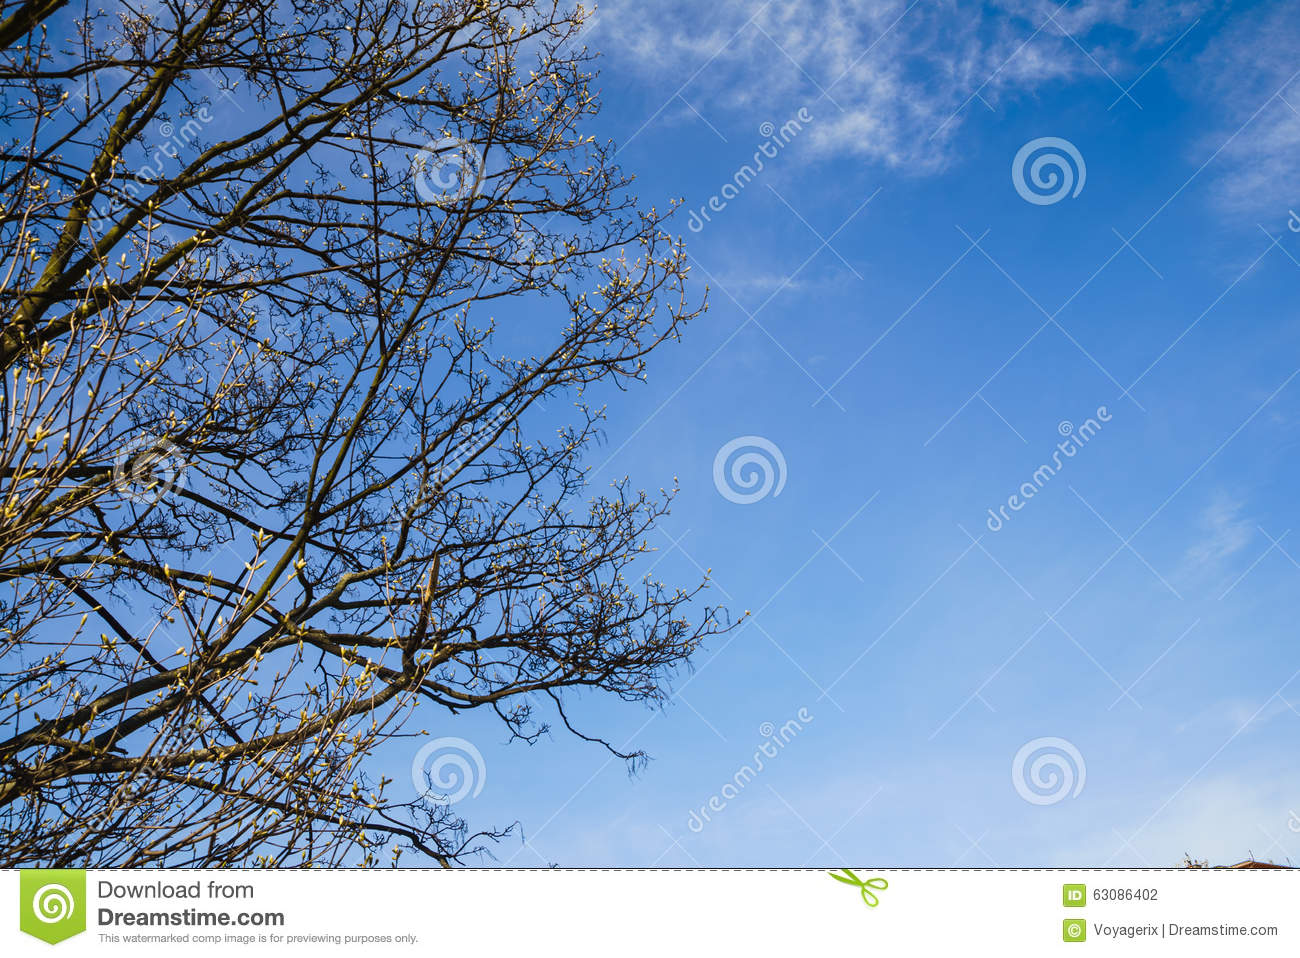 Download Arbre De Floraison Sur Le Fond De Ciel Bleu Photo stock - Image du nature, branchements: 63086402